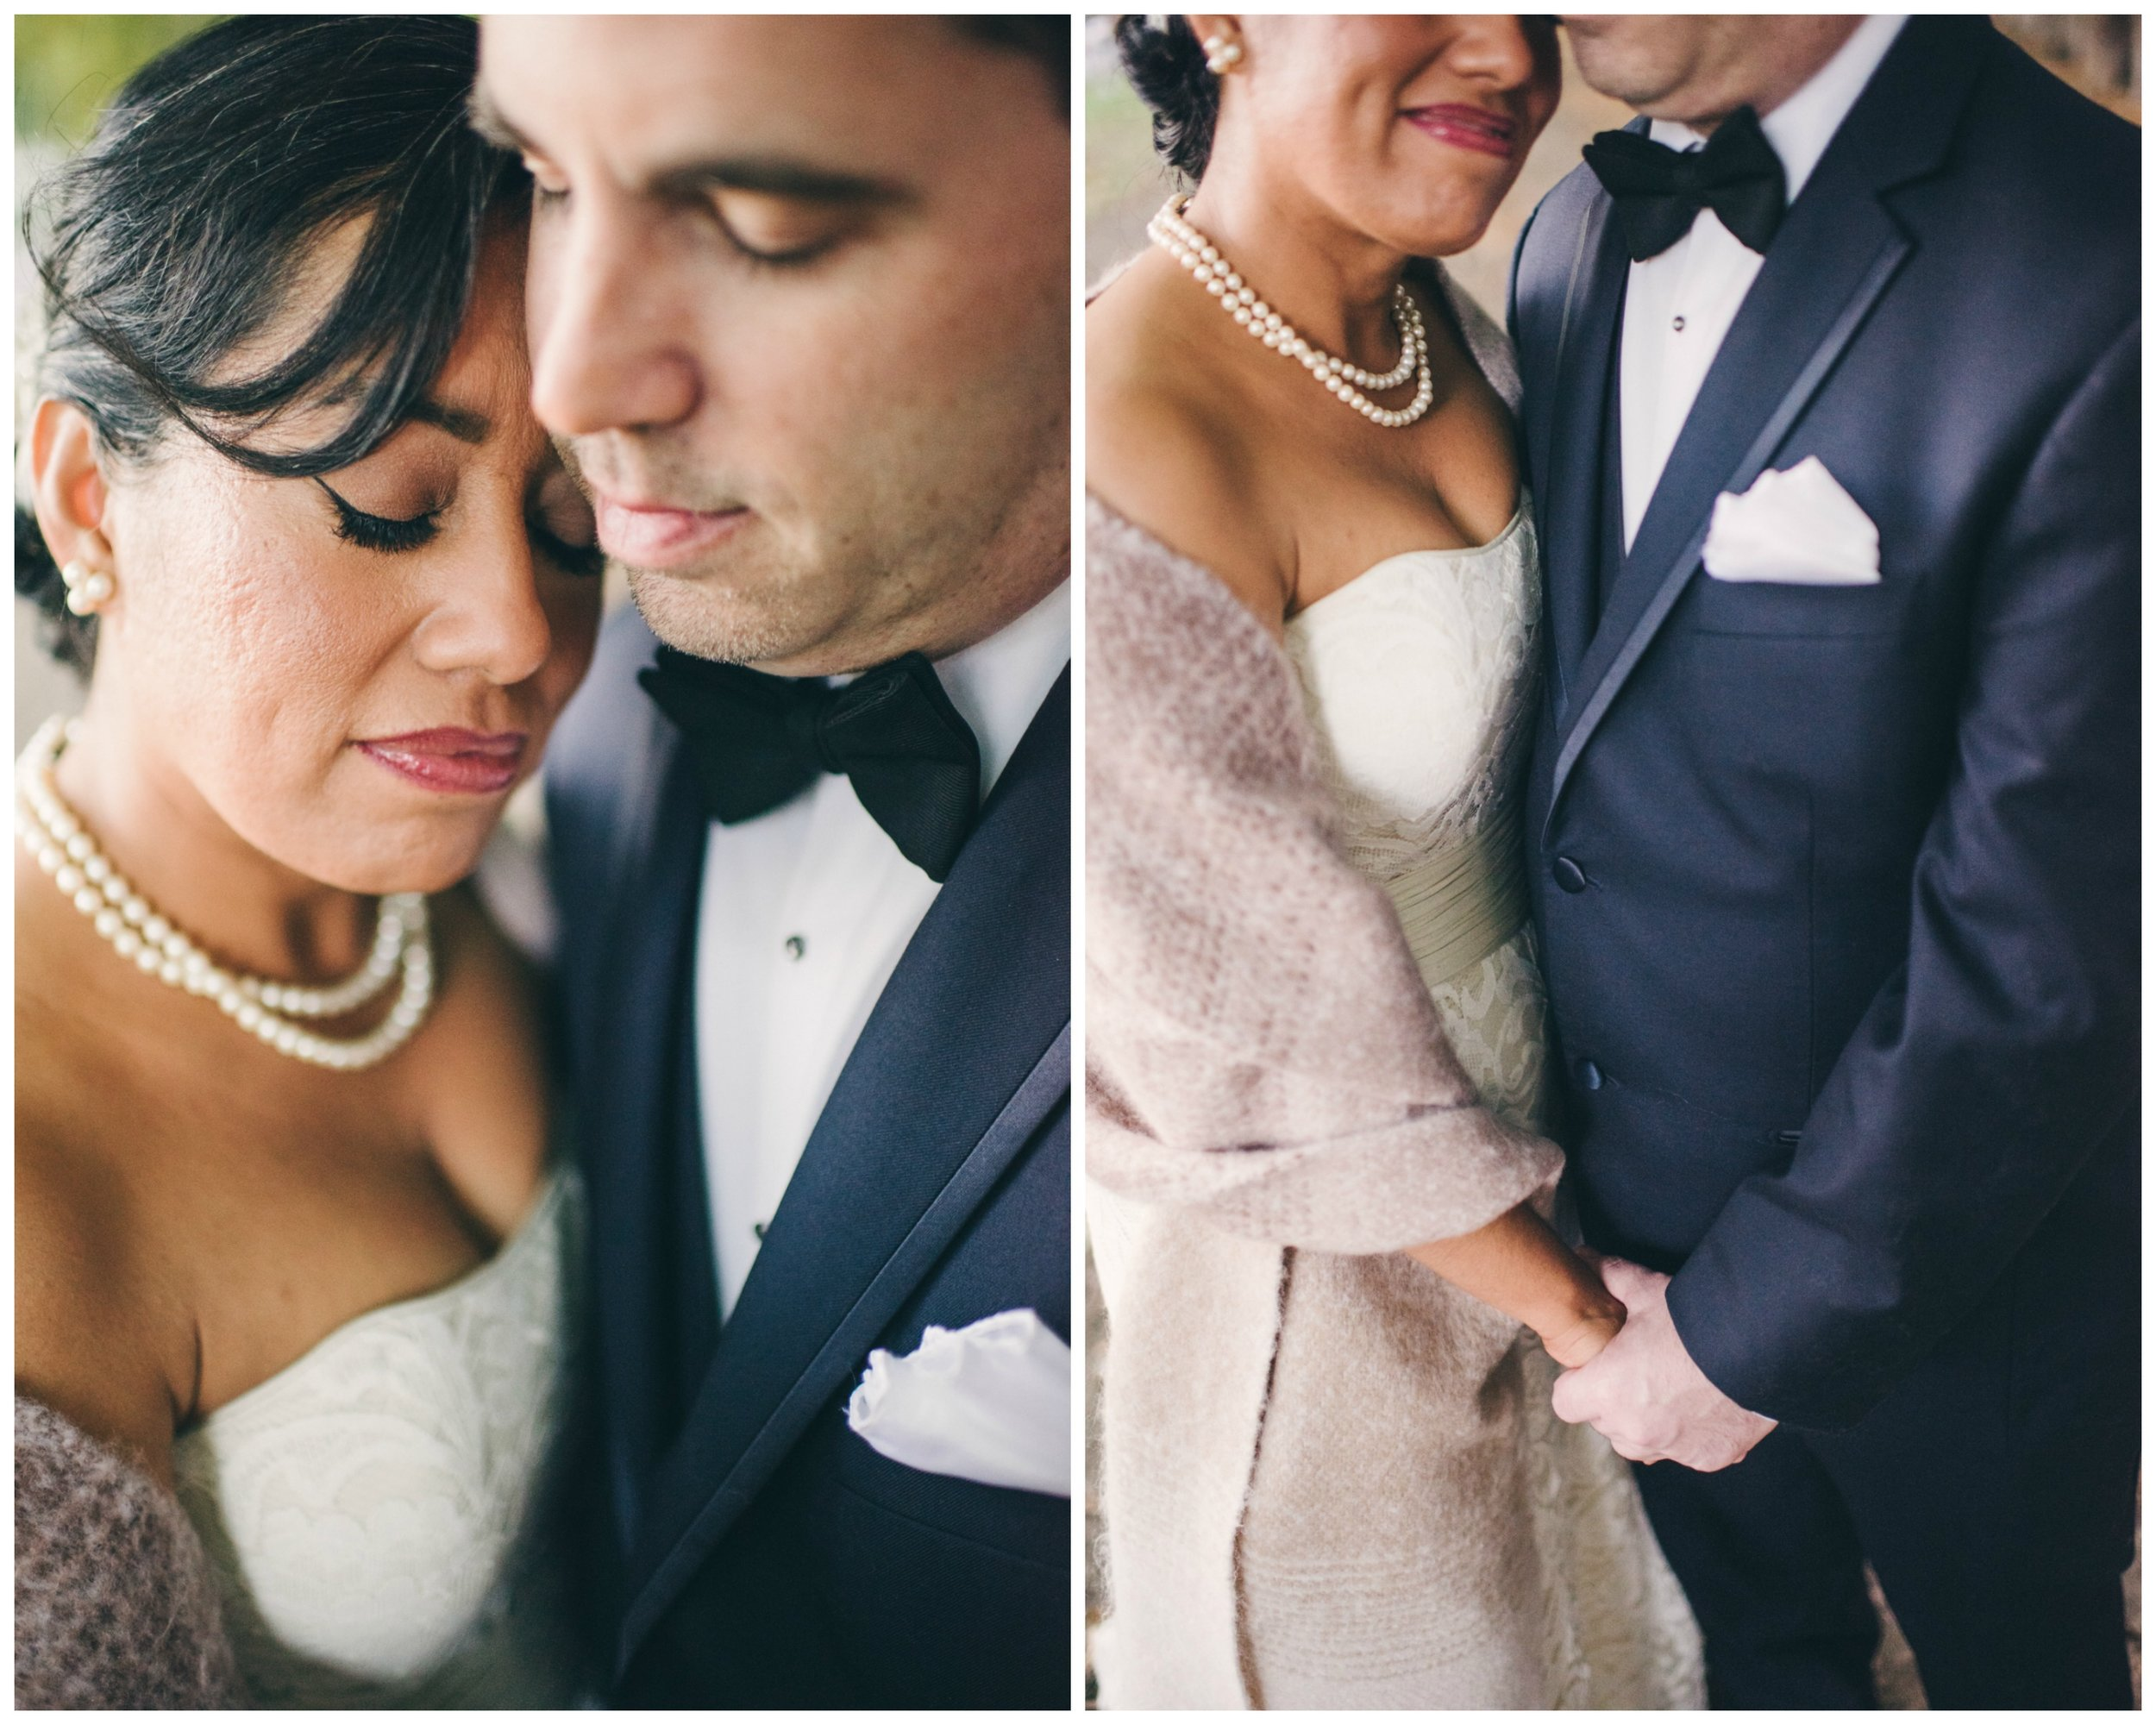 BROOKLYN WINERY WEDDING - TWOTWENTY by CHI-CHI 5.jpg